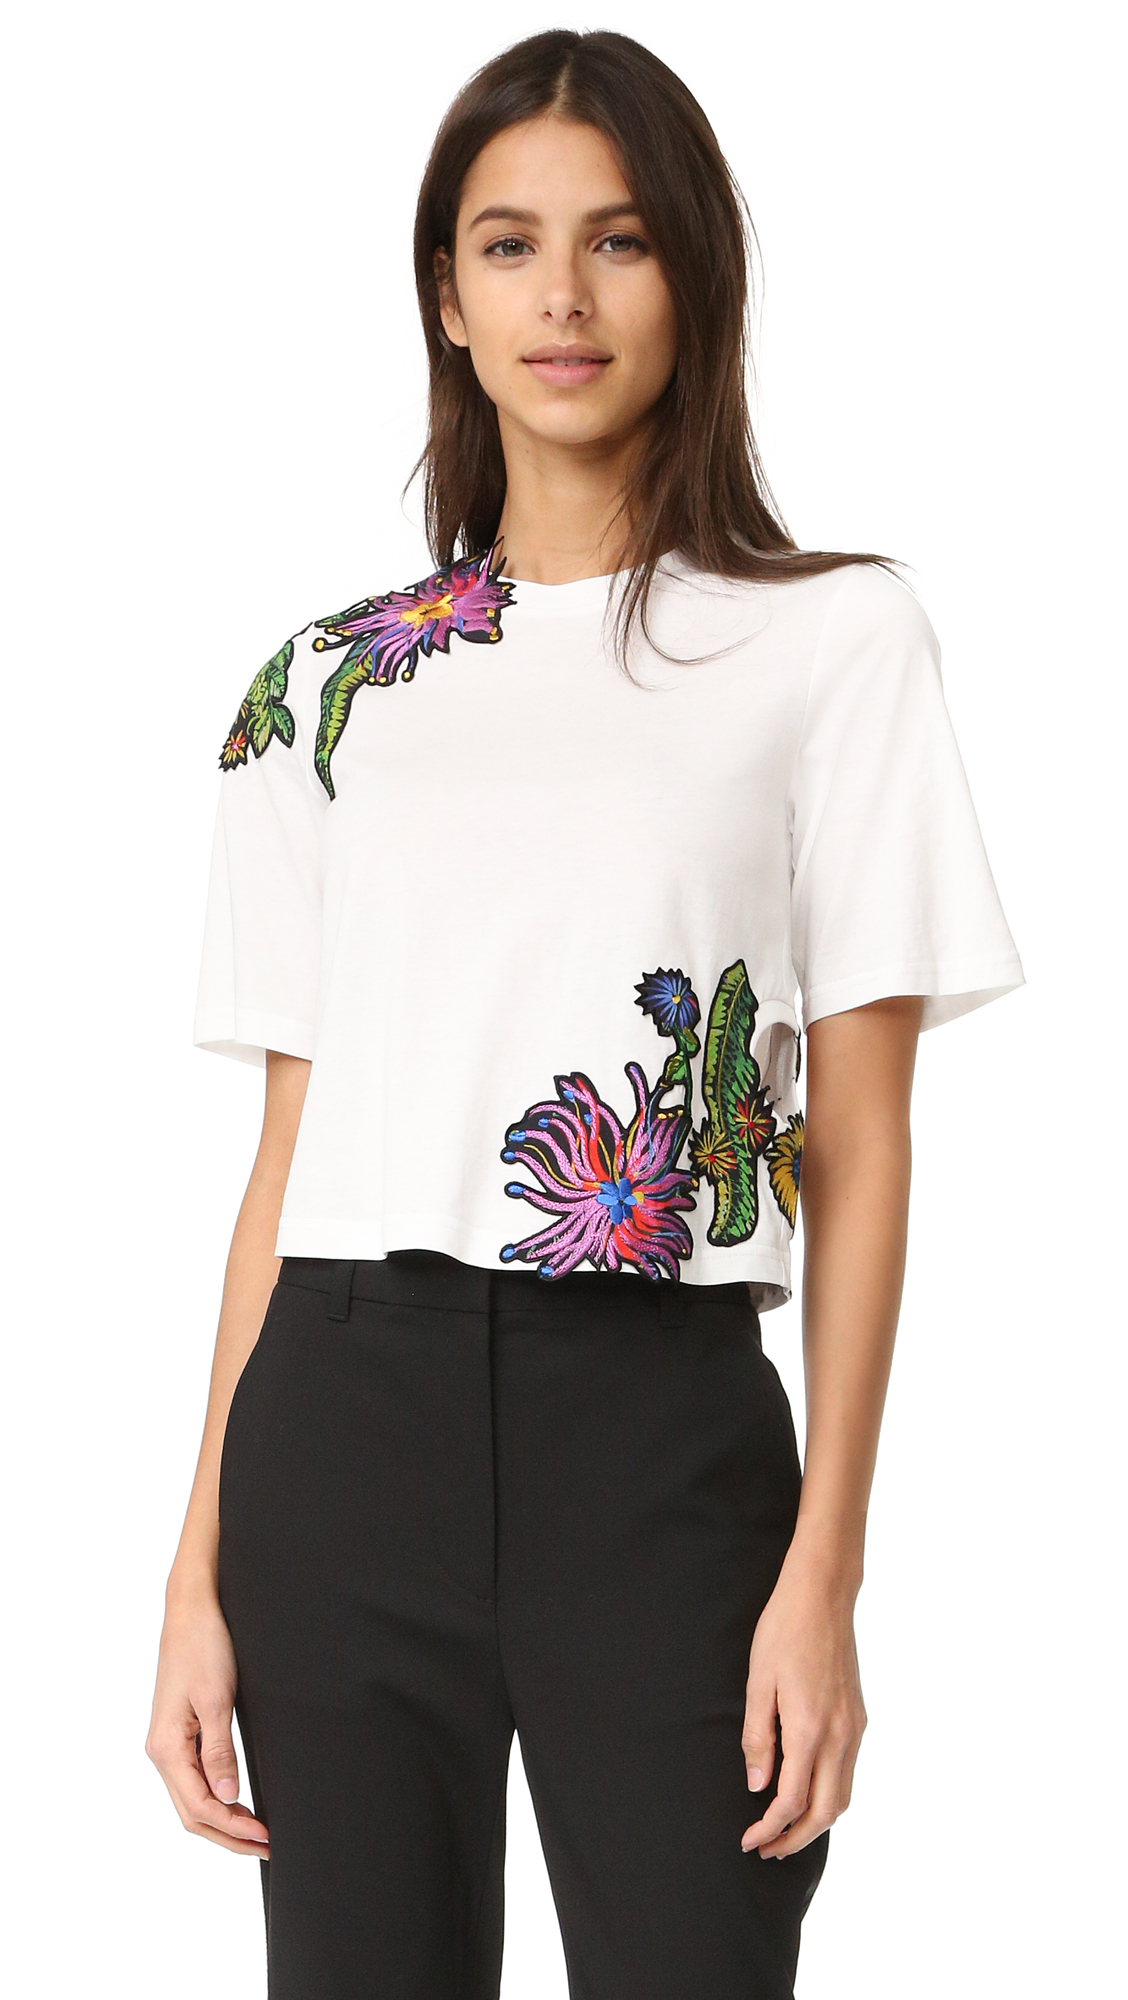 3.1 Phillip Lim Floral Embroidered Tee - Antique White at Shopbop